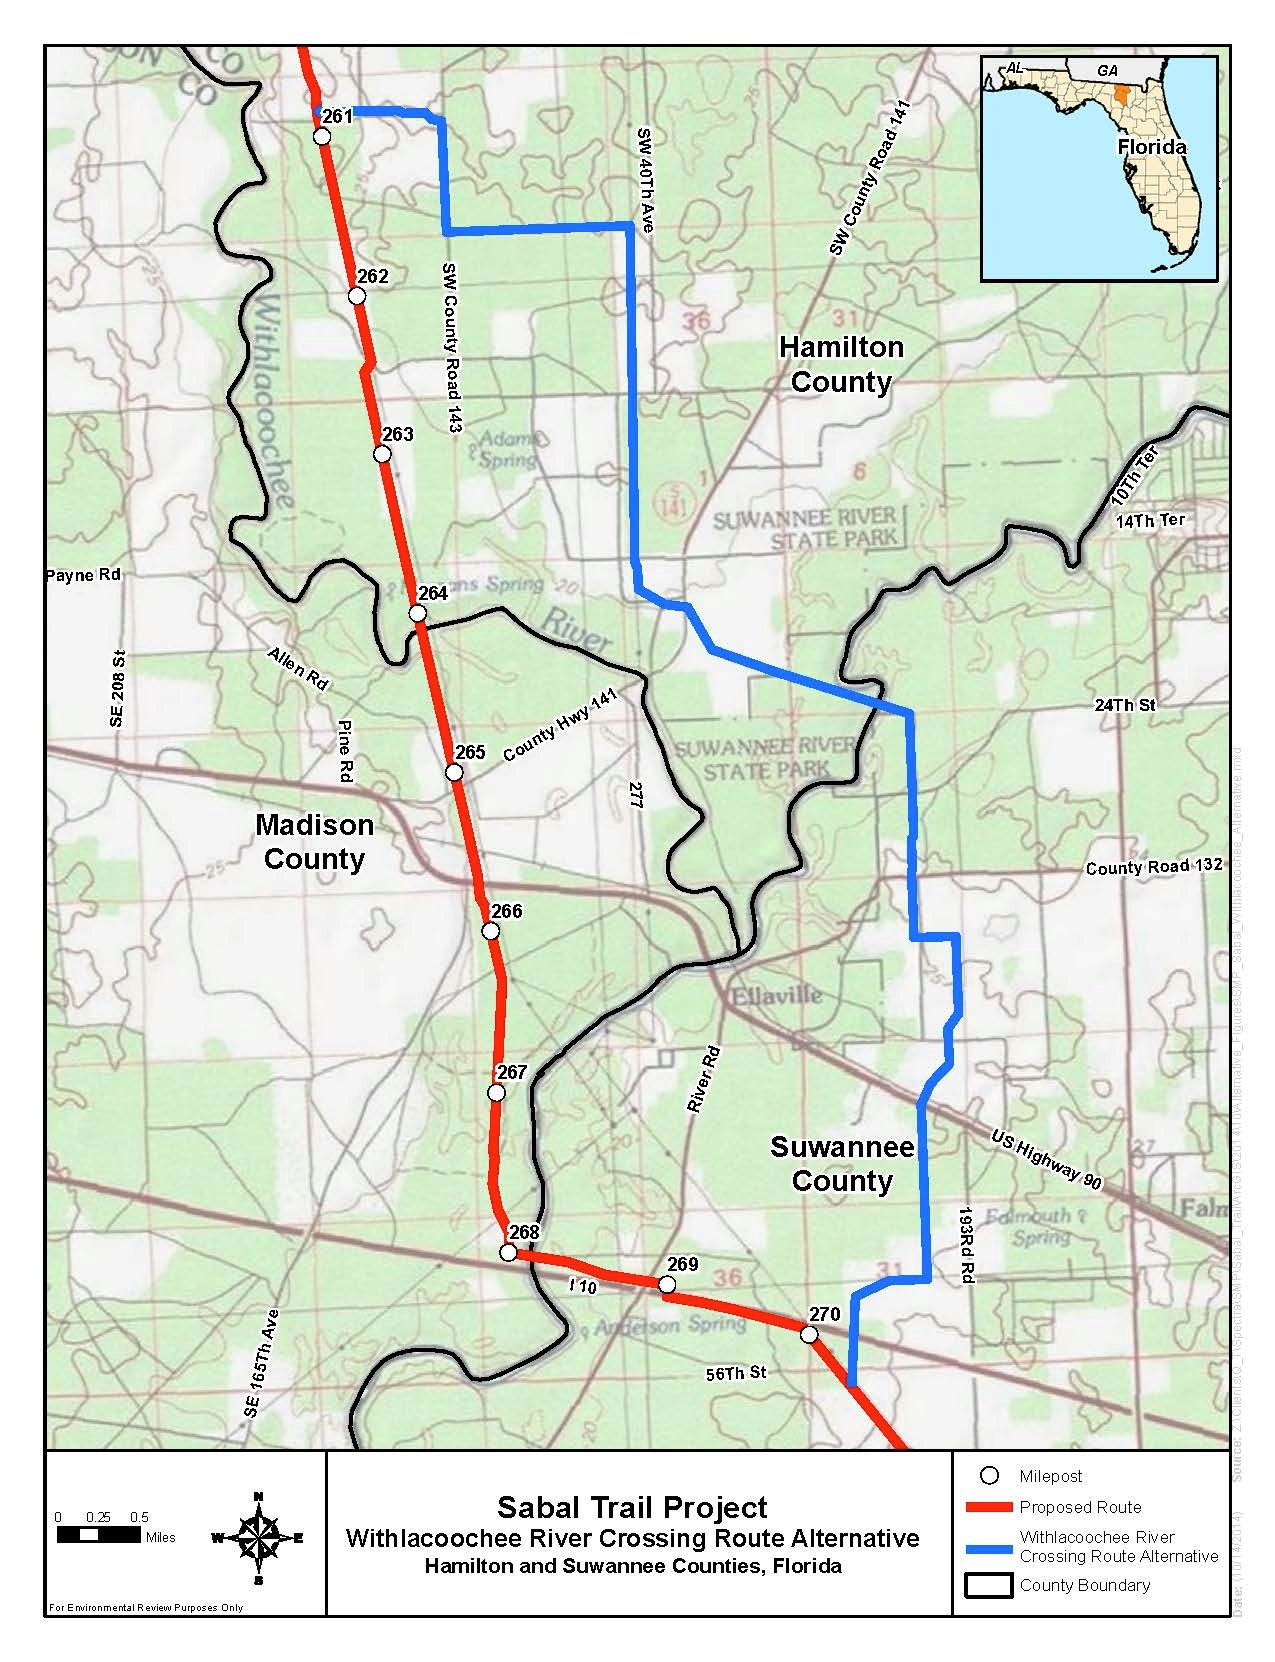 1275x1662 Withlacoochee River Crossing Route Alternative, Hamilton and Suwannee Counties, Florida (bare), in Sabal Trail Notice of EIS Intent, by John S. Quarterman, for SpectraBusters.org, 15 October 2014